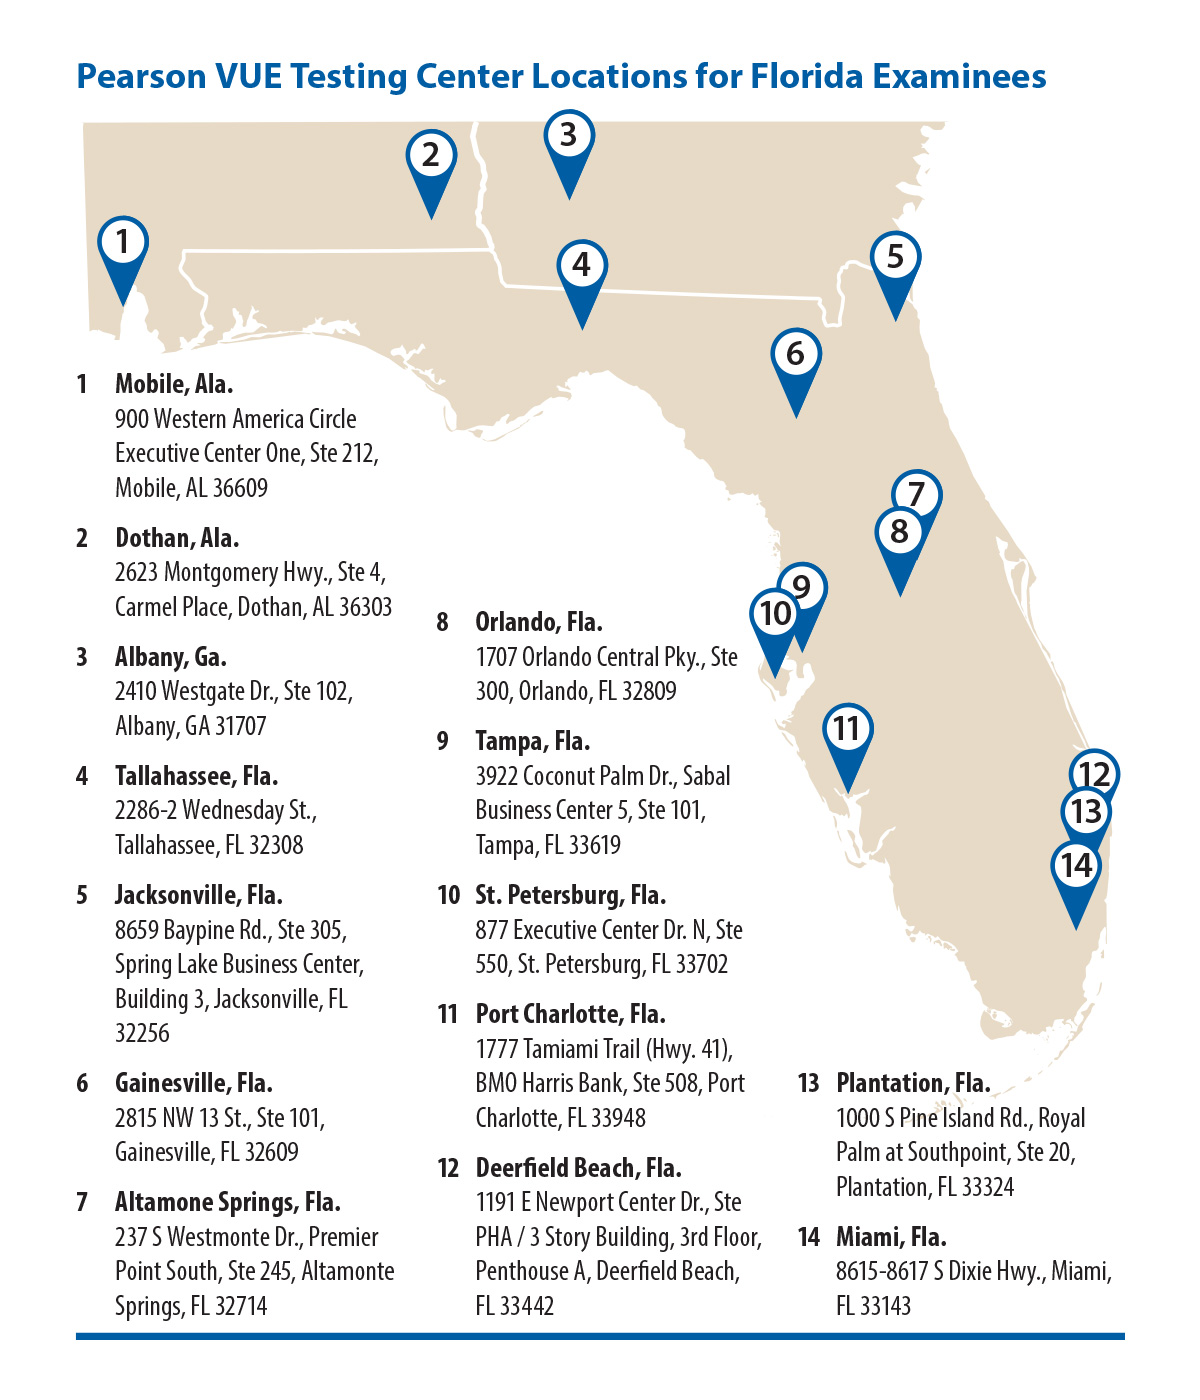 Pearson VUE has 14 testing locations in or near Florida